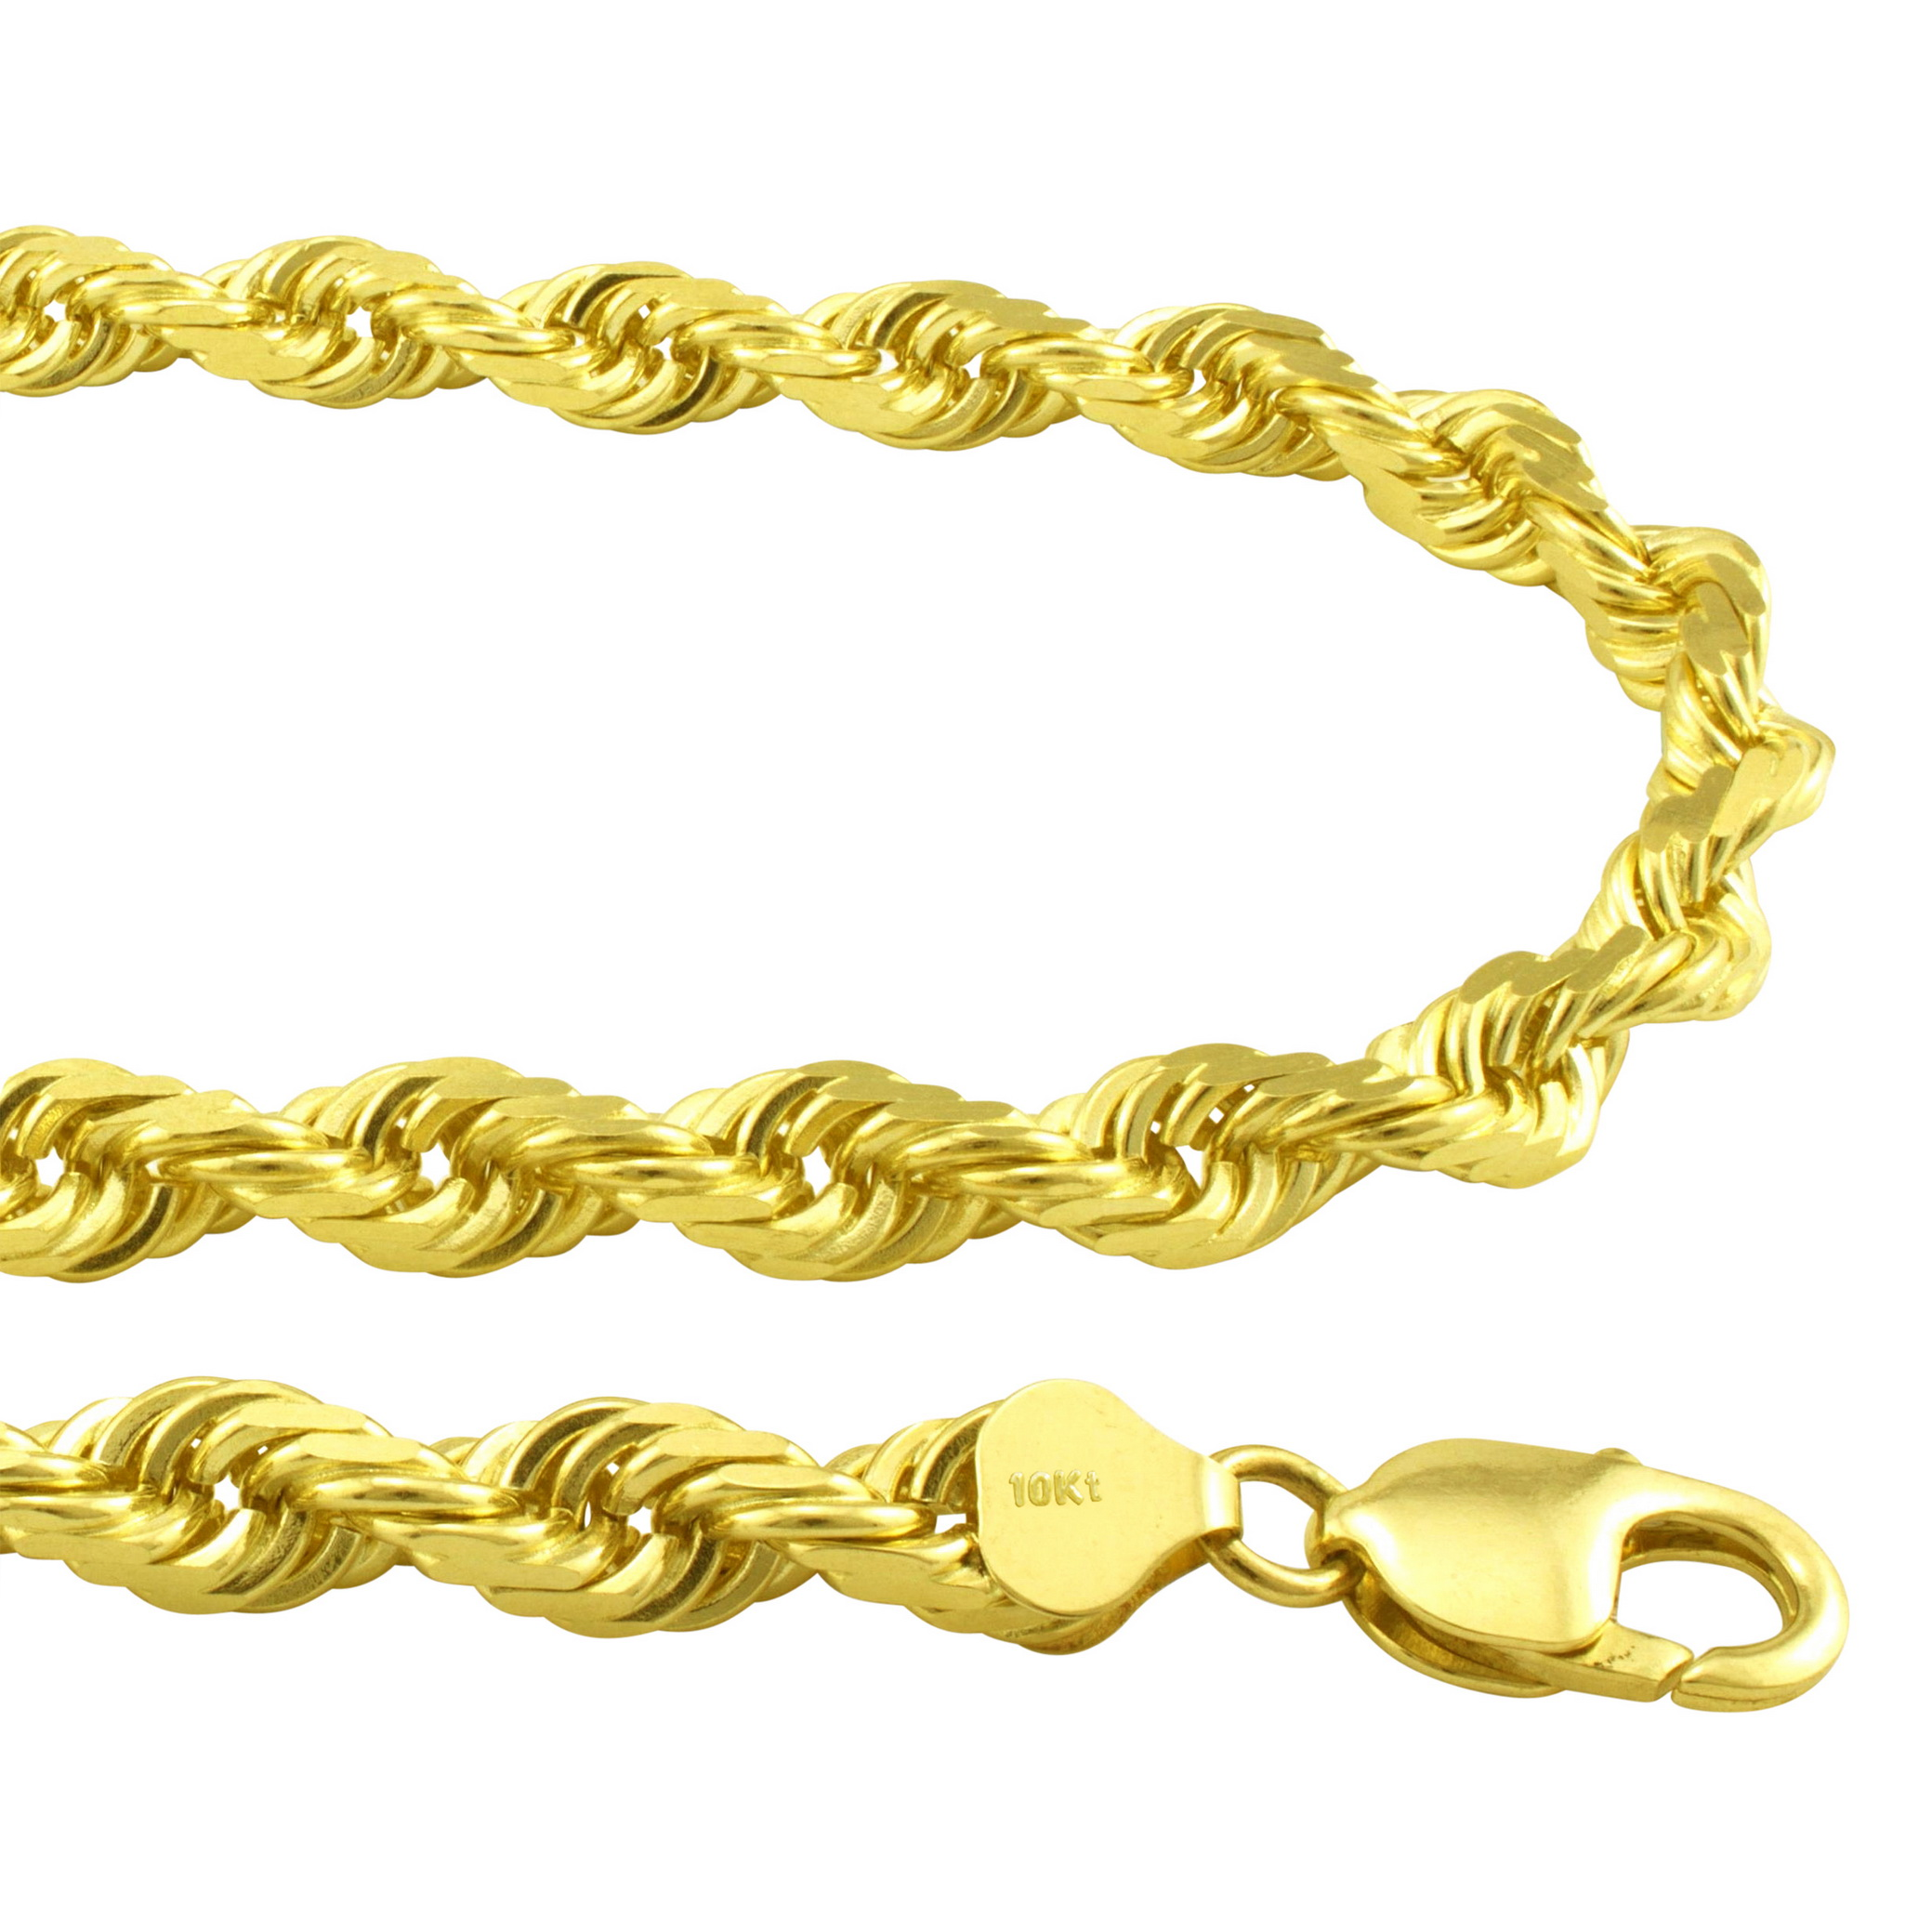 10k Gold Diamond Cut Wheat Chain Necklace White or Yellow Gold Italian made